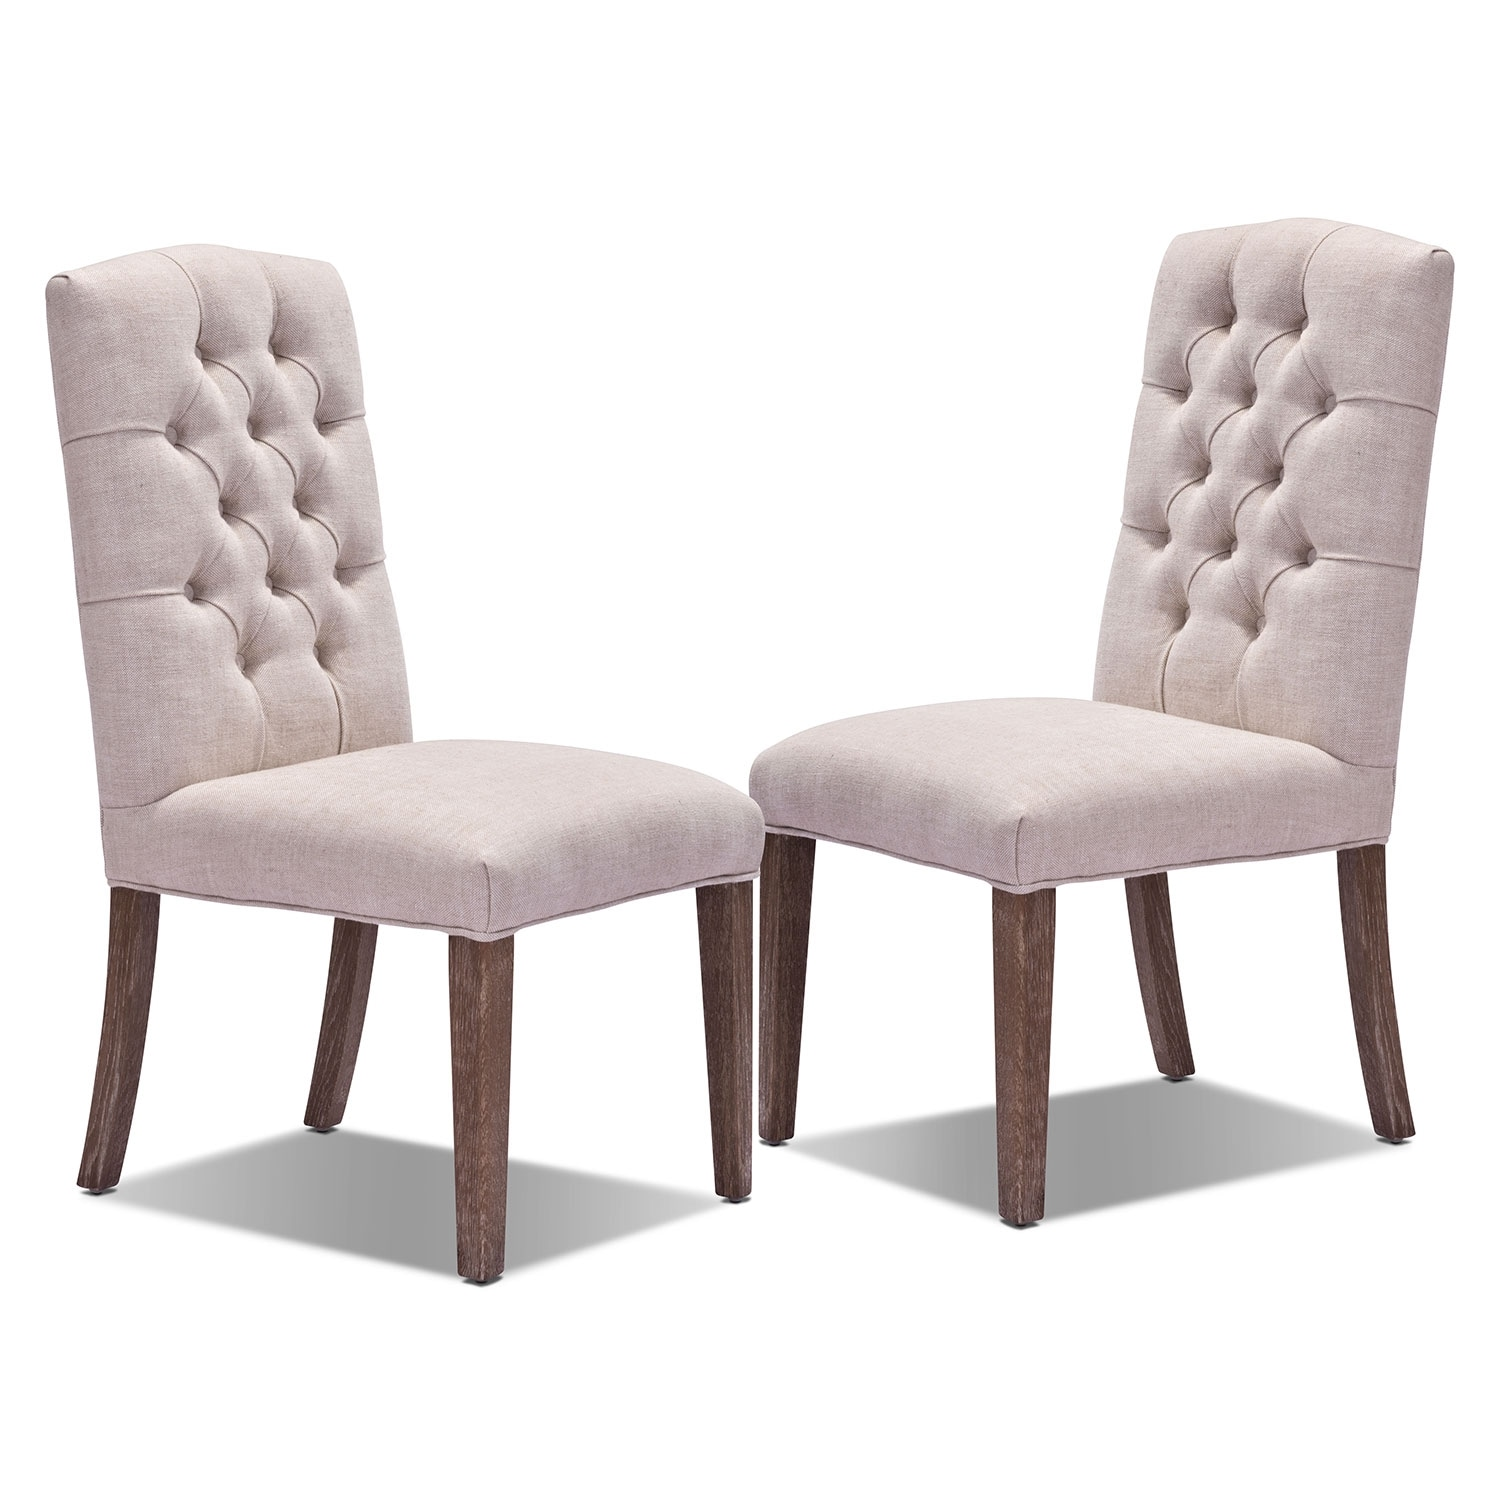 Dining room chairs seating american signature furniture - Dining room chairs used ...